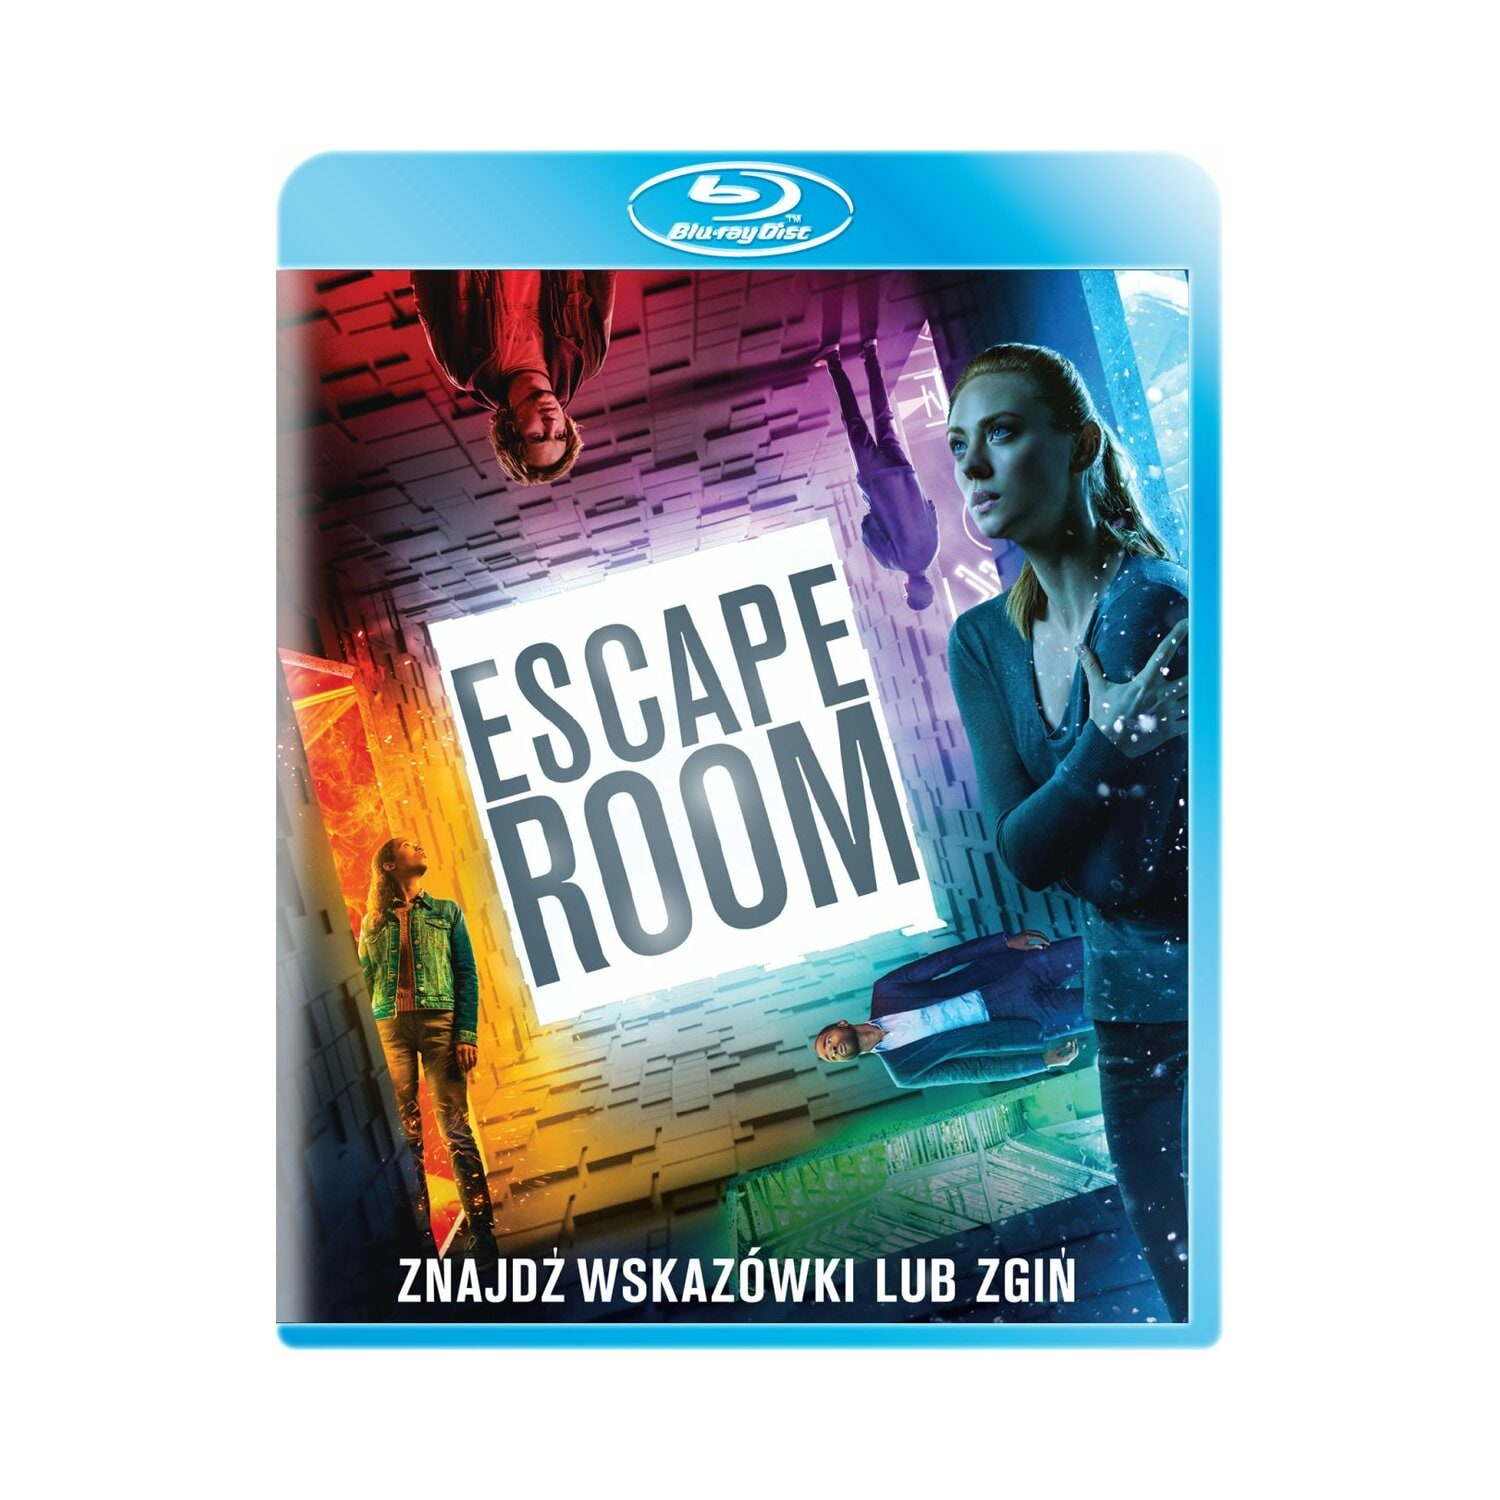 Escape Room (BD)